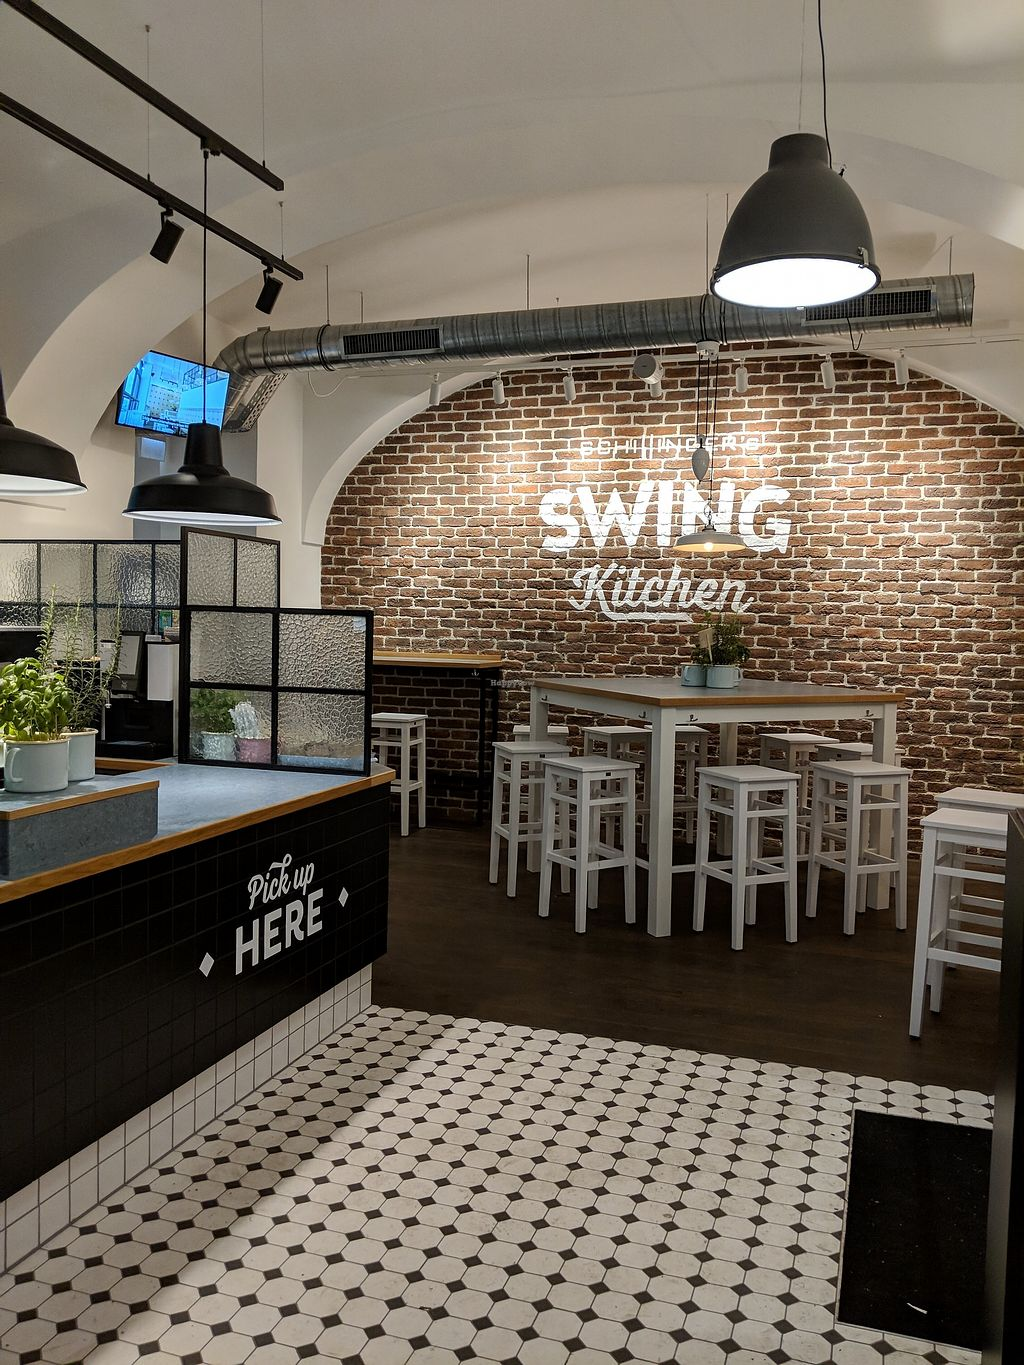 """Photo of Swing Kitchen - Währinger Str  by <a href=""""/members/profile/community5"""">community5</a> <br/>Swing Kitchen - Währinger Str <br/> February 20, 2018  - <a href='/contact/abuse/image/112145/361710'>Report</a>"""